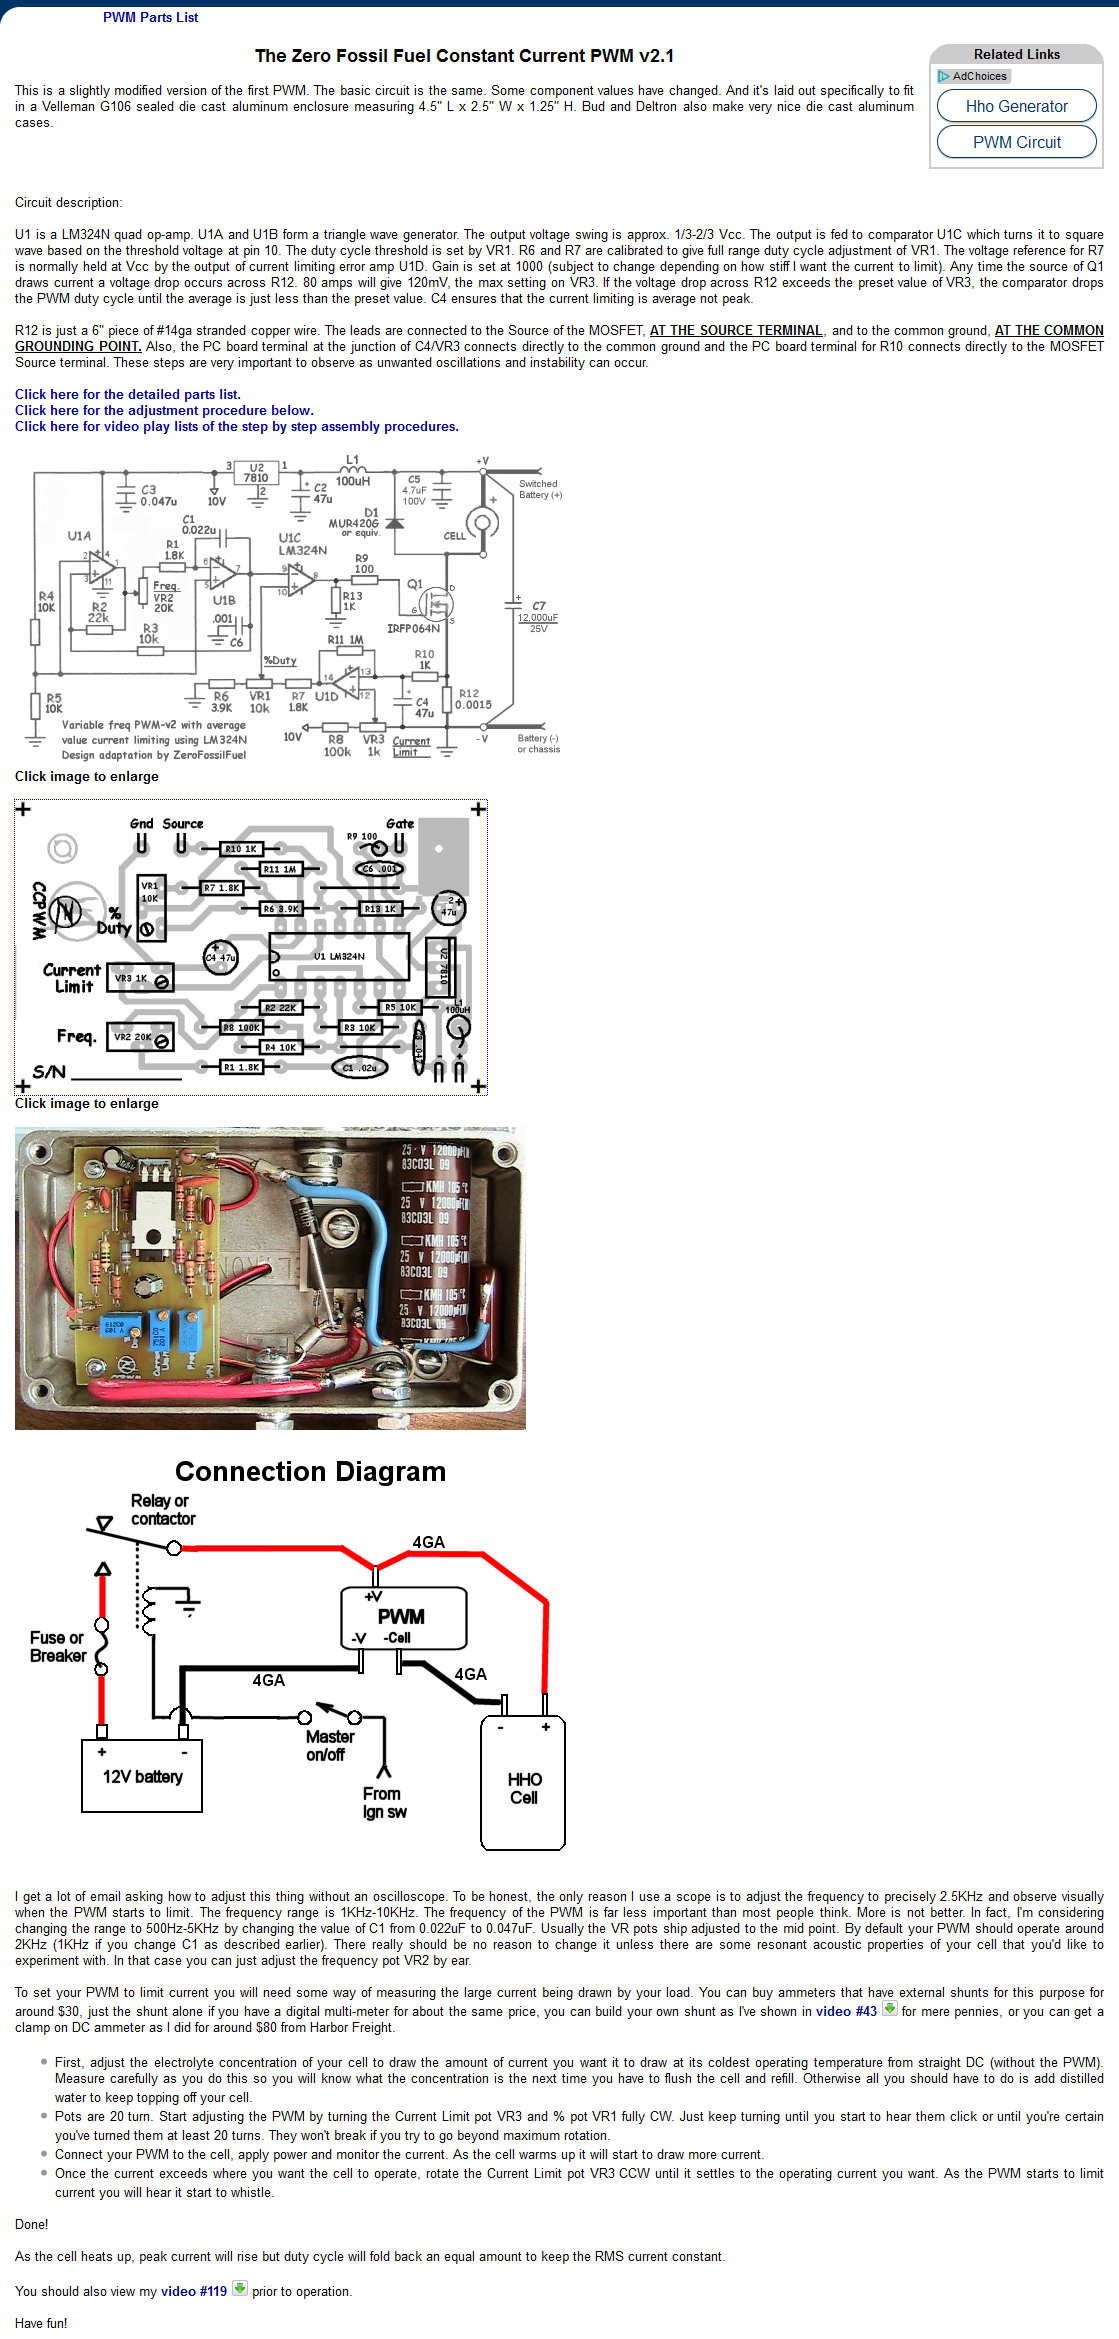 medium resolution of pwm v2 1 plans parts list board layout and schematic